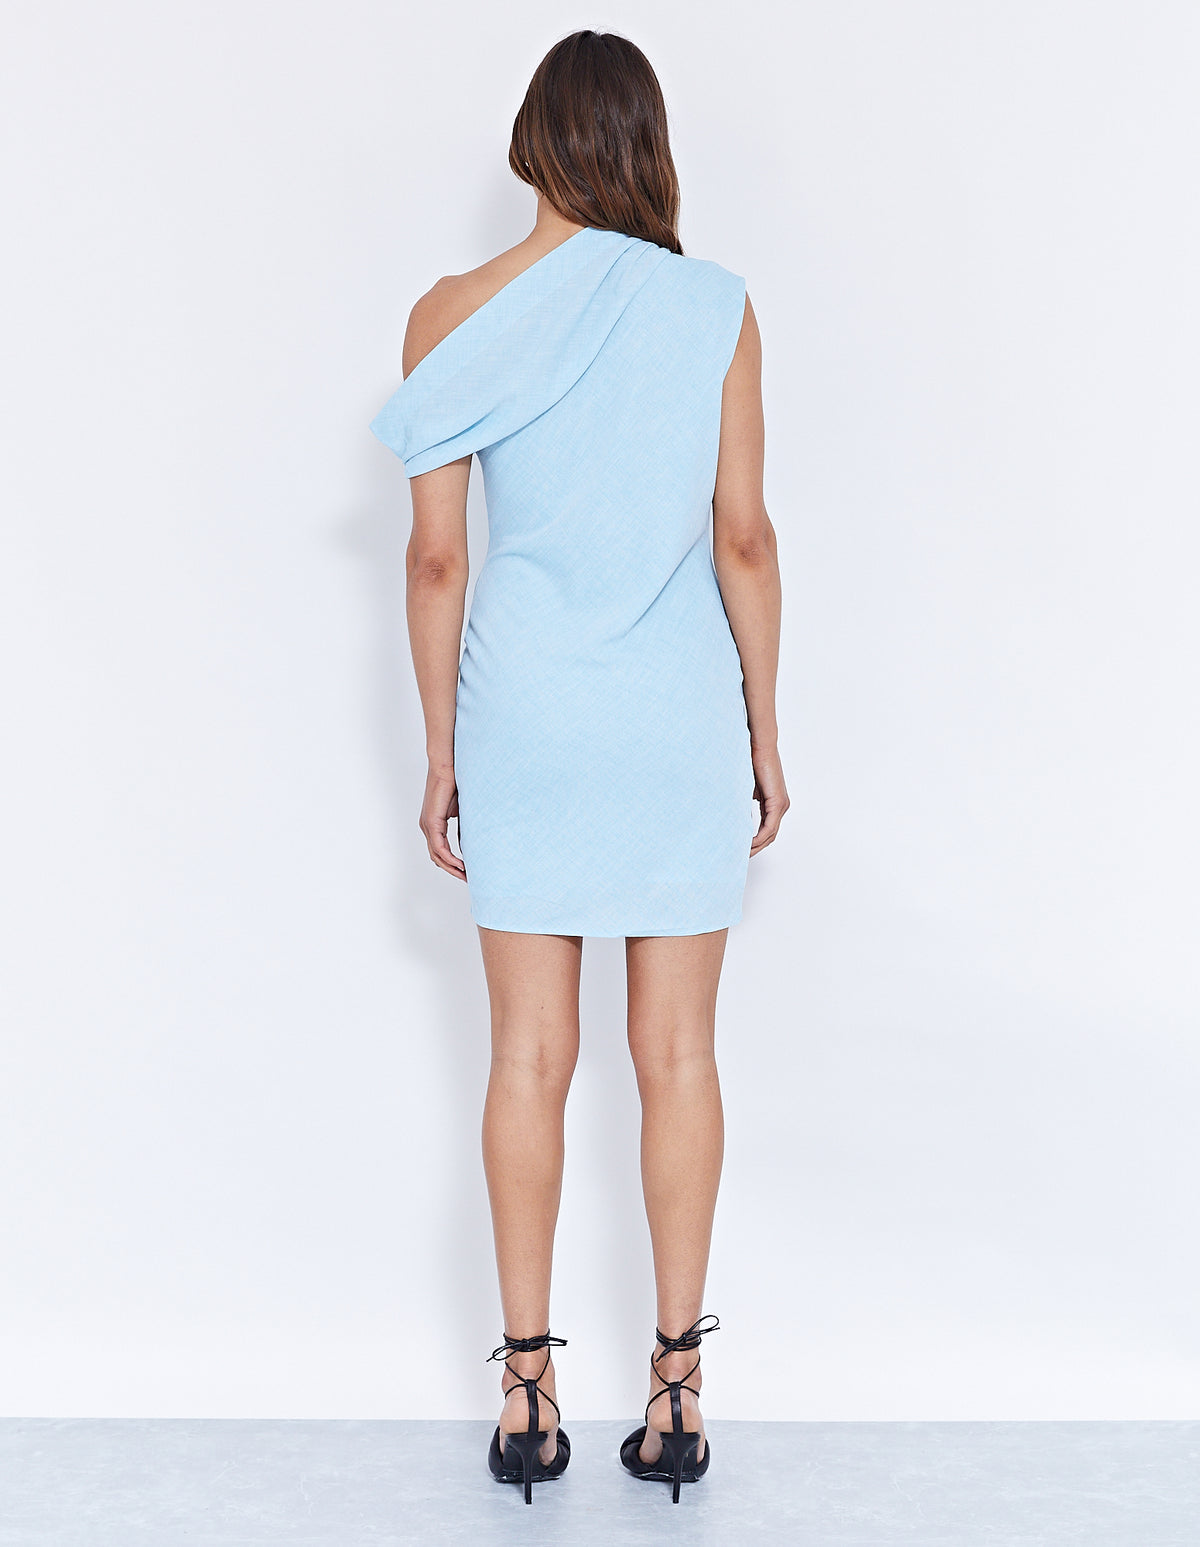 GEORGE DRESS | BLUE